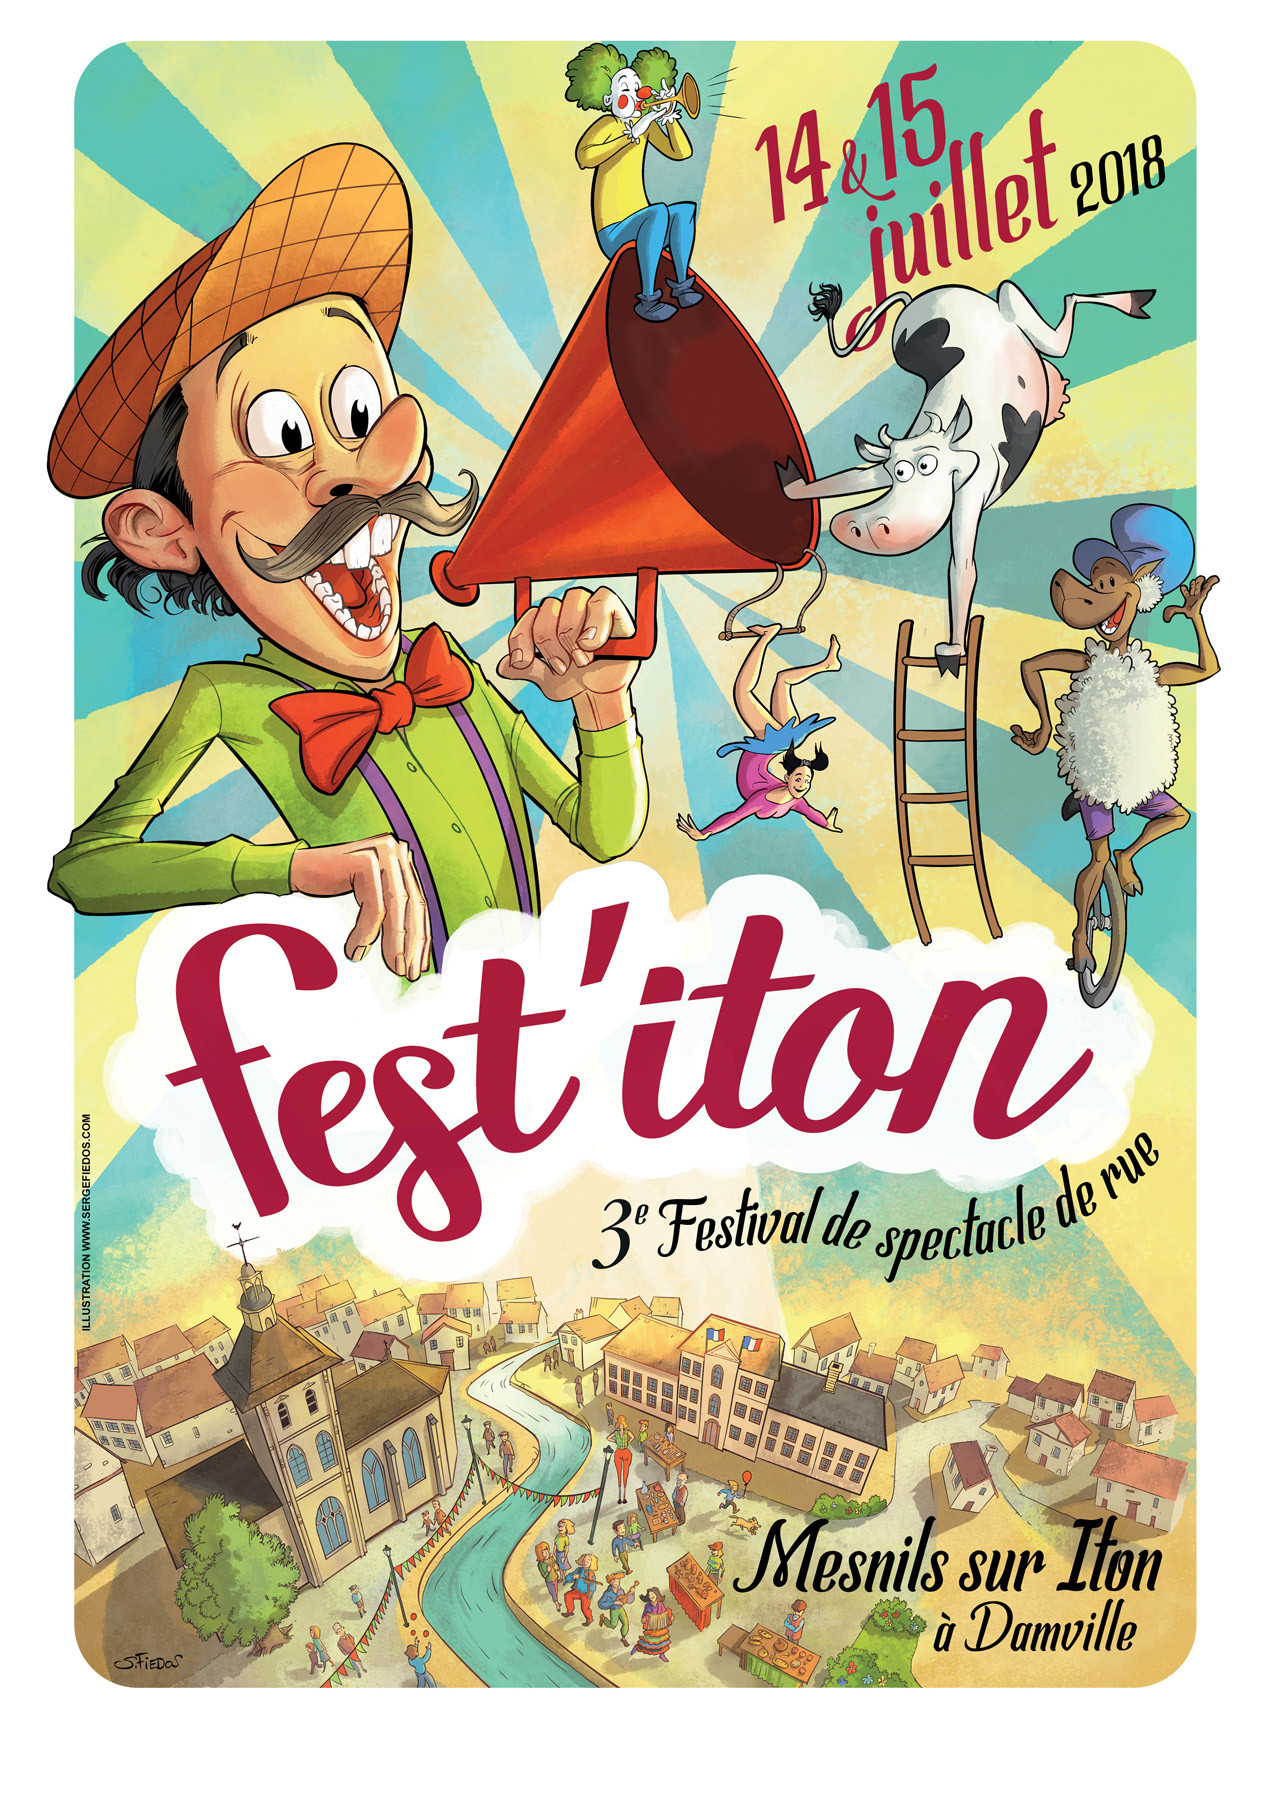 Serge fiedos festiton poster by serge fiedos